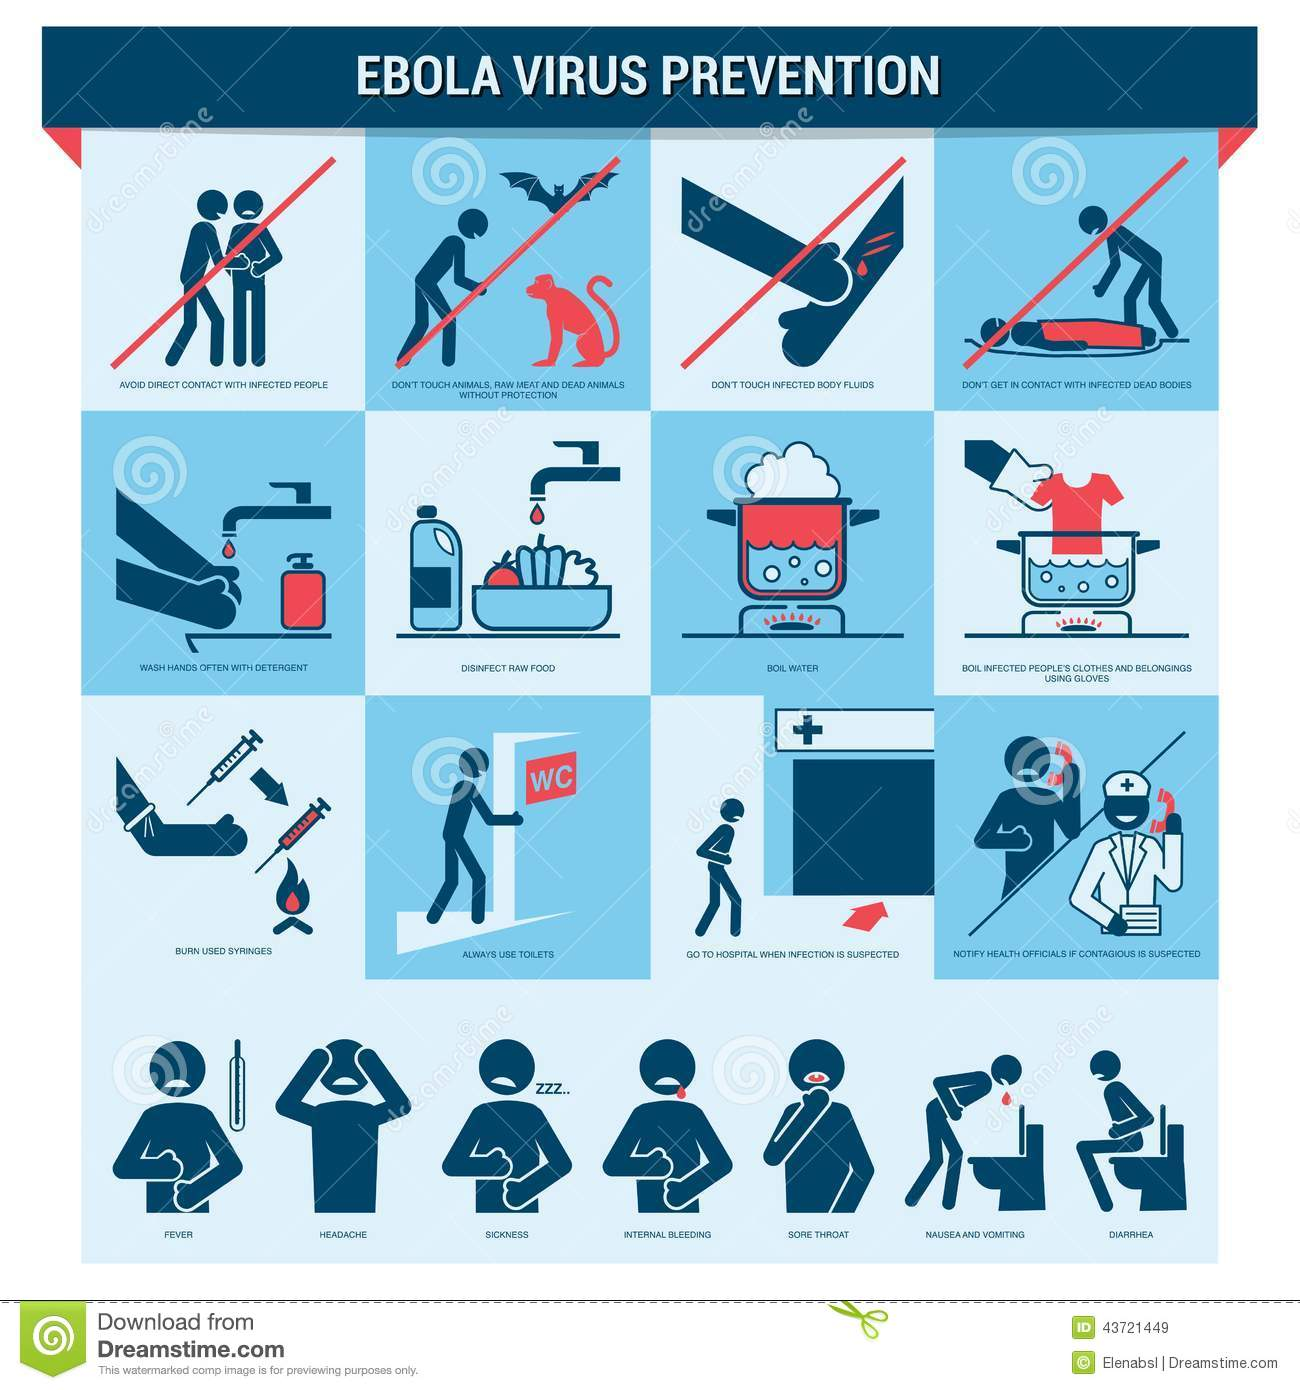 the prevention treatment and control of ebola Prevention of ebola including prevention, vaccinations, and avoiding contagion or infection.